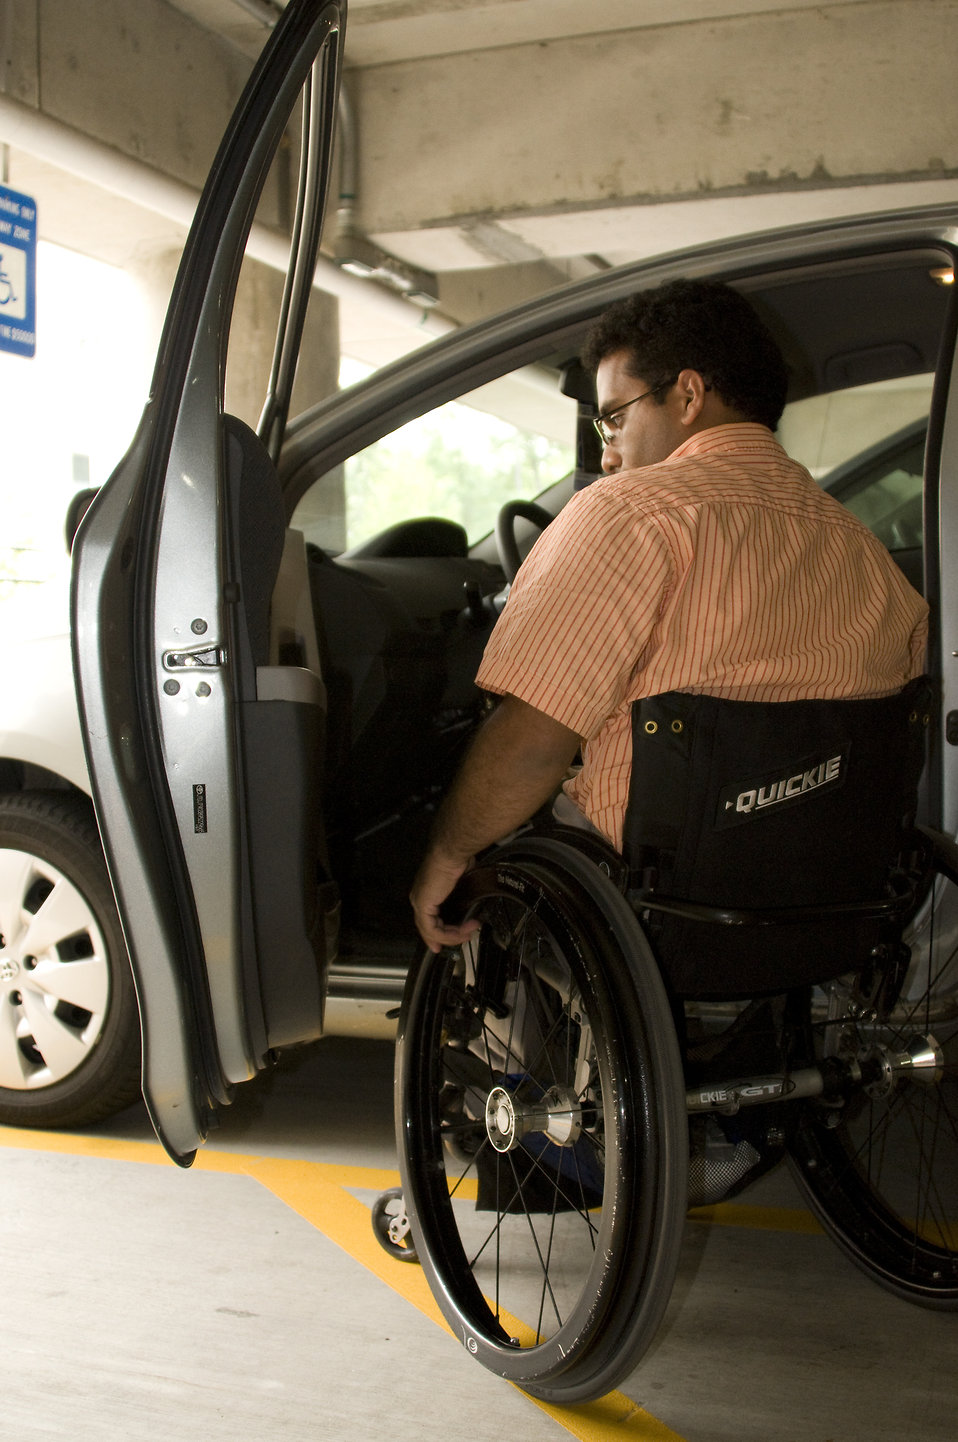 A disabled man in a wheelchair getting out of a car : Free Stock Photo